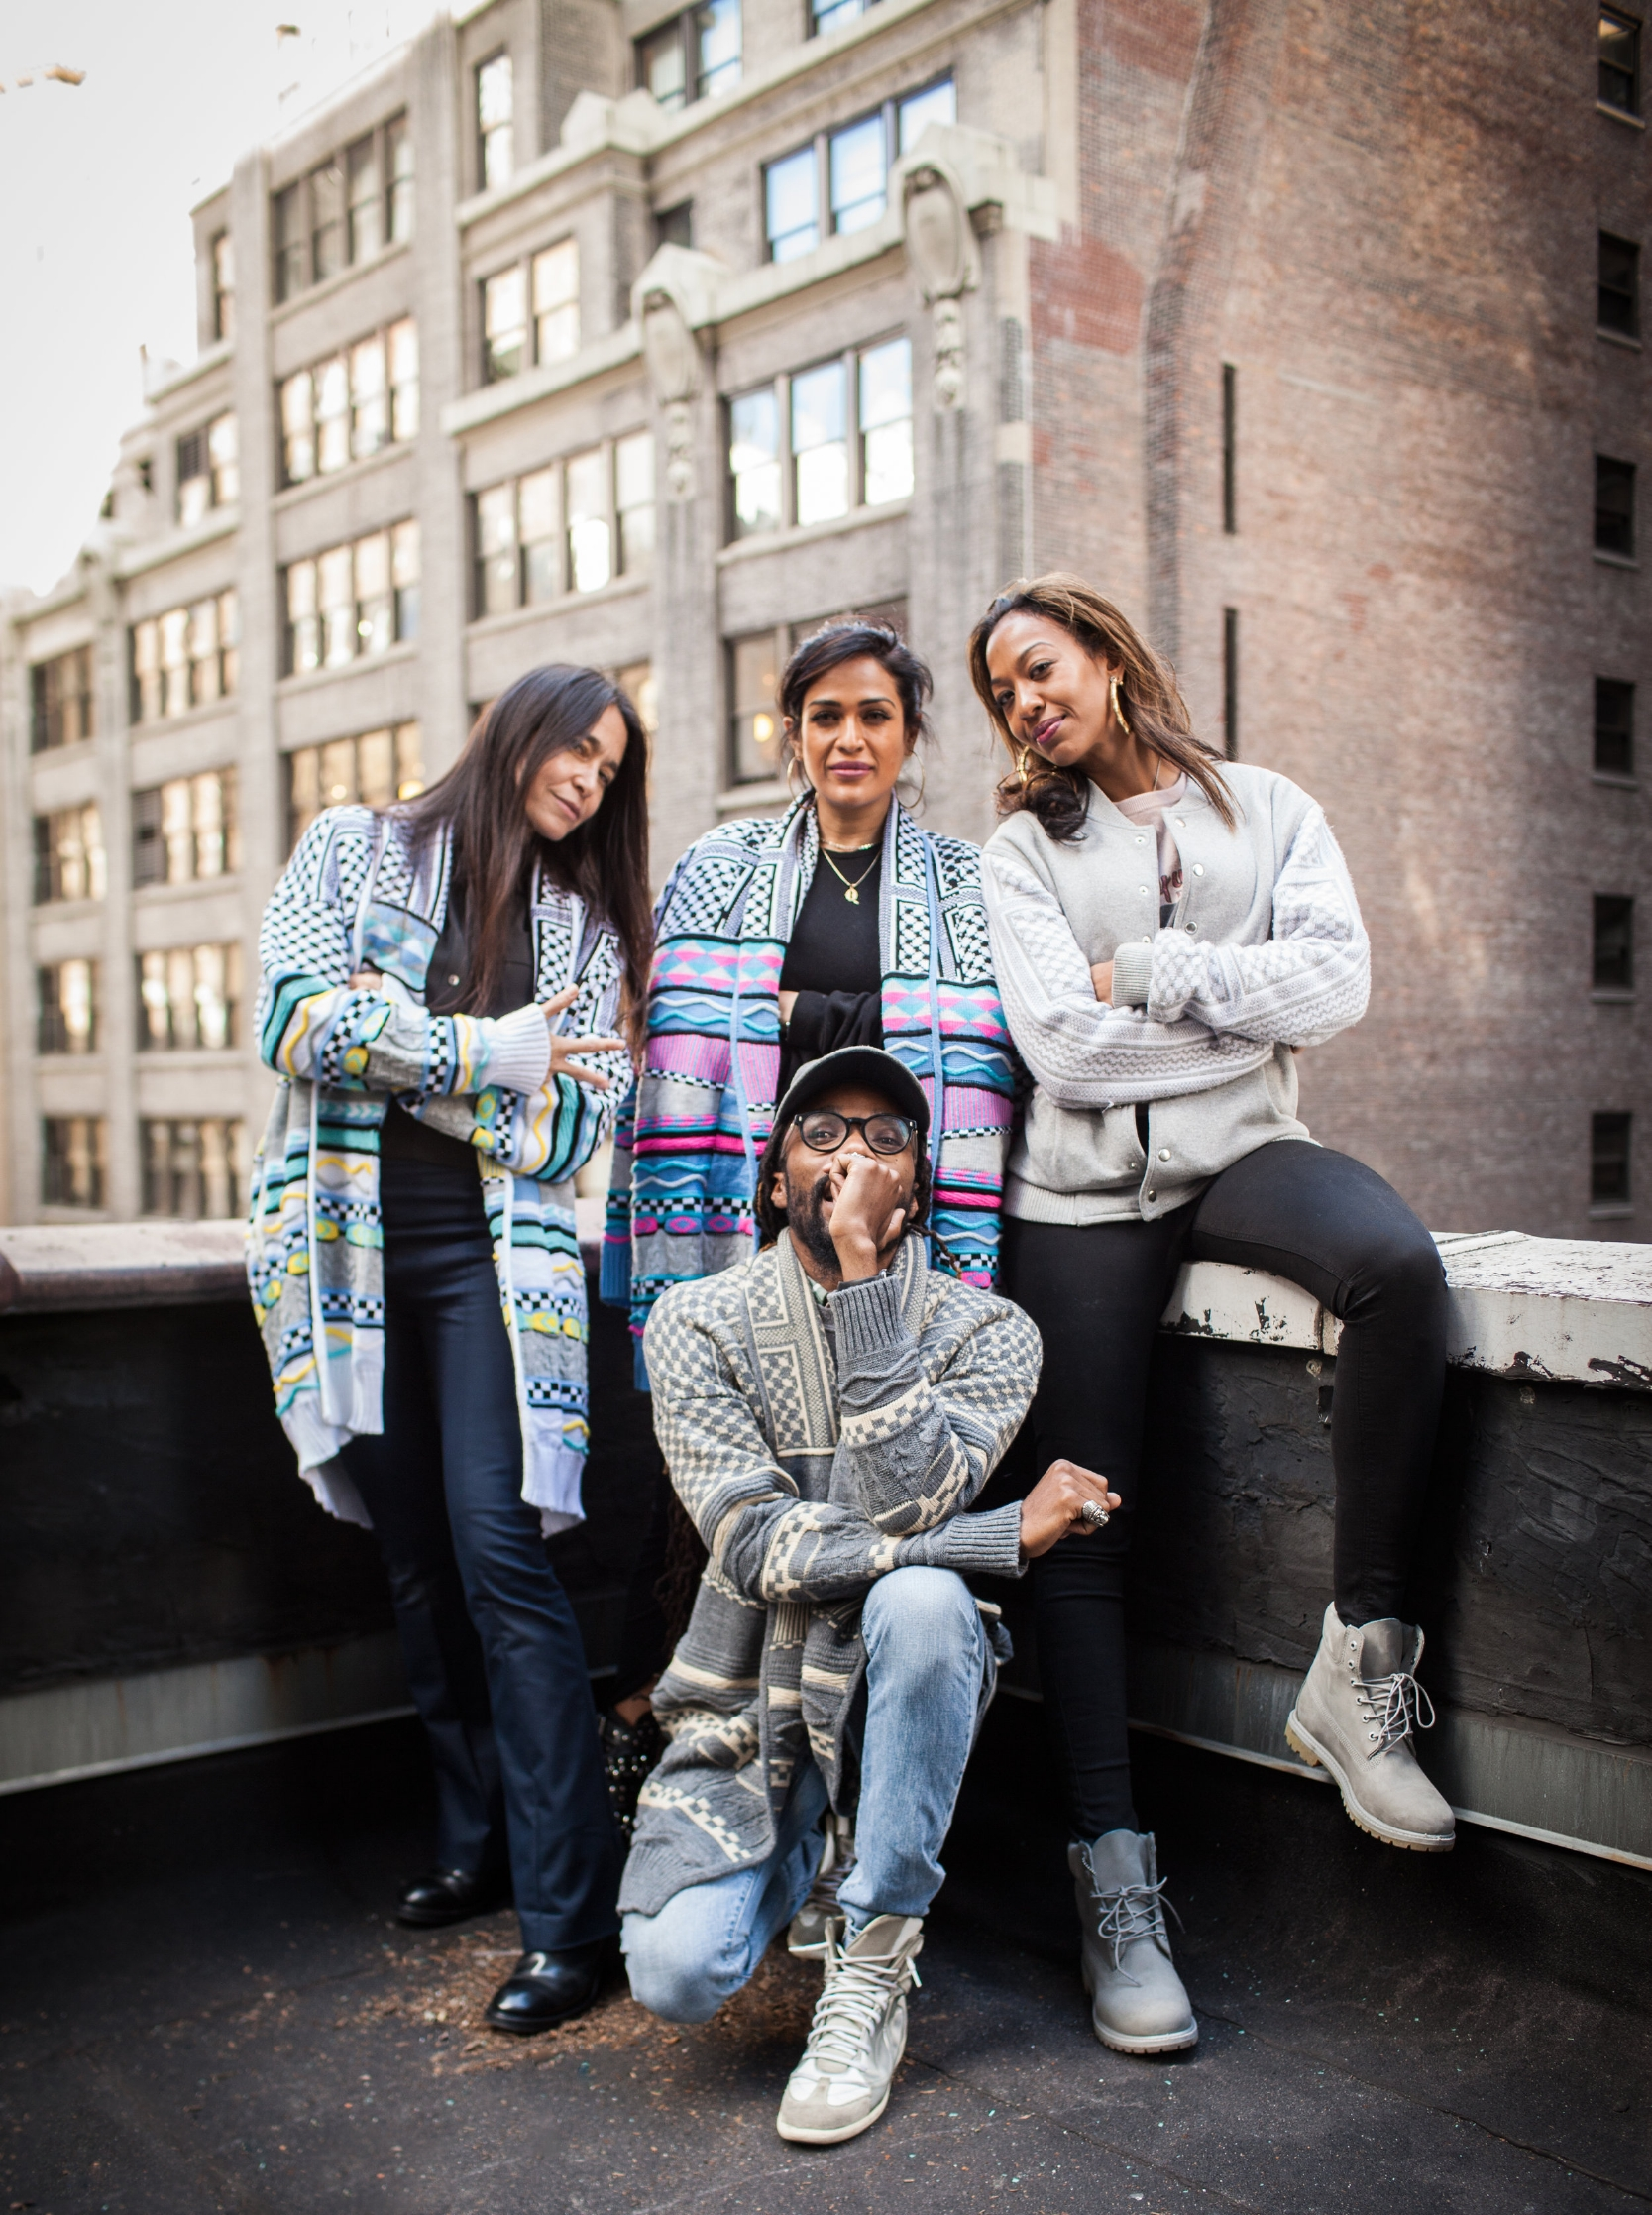 Founder Jill Andresevic,Ainy,Sari, and Yahdon posing in ANZ on city rooftop.